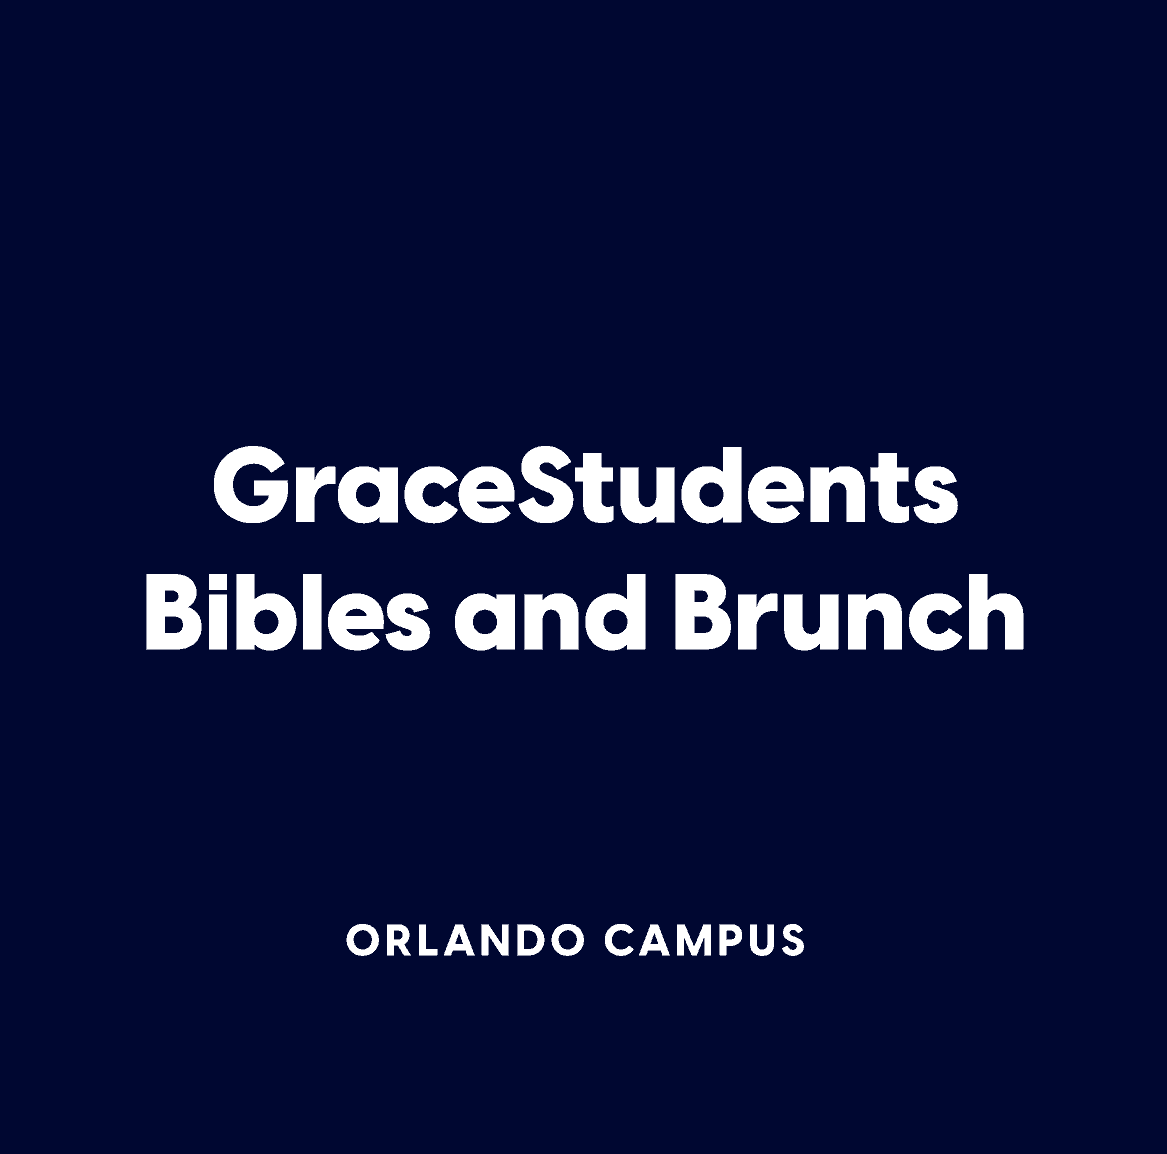 GraceStudents Bible and Brunch